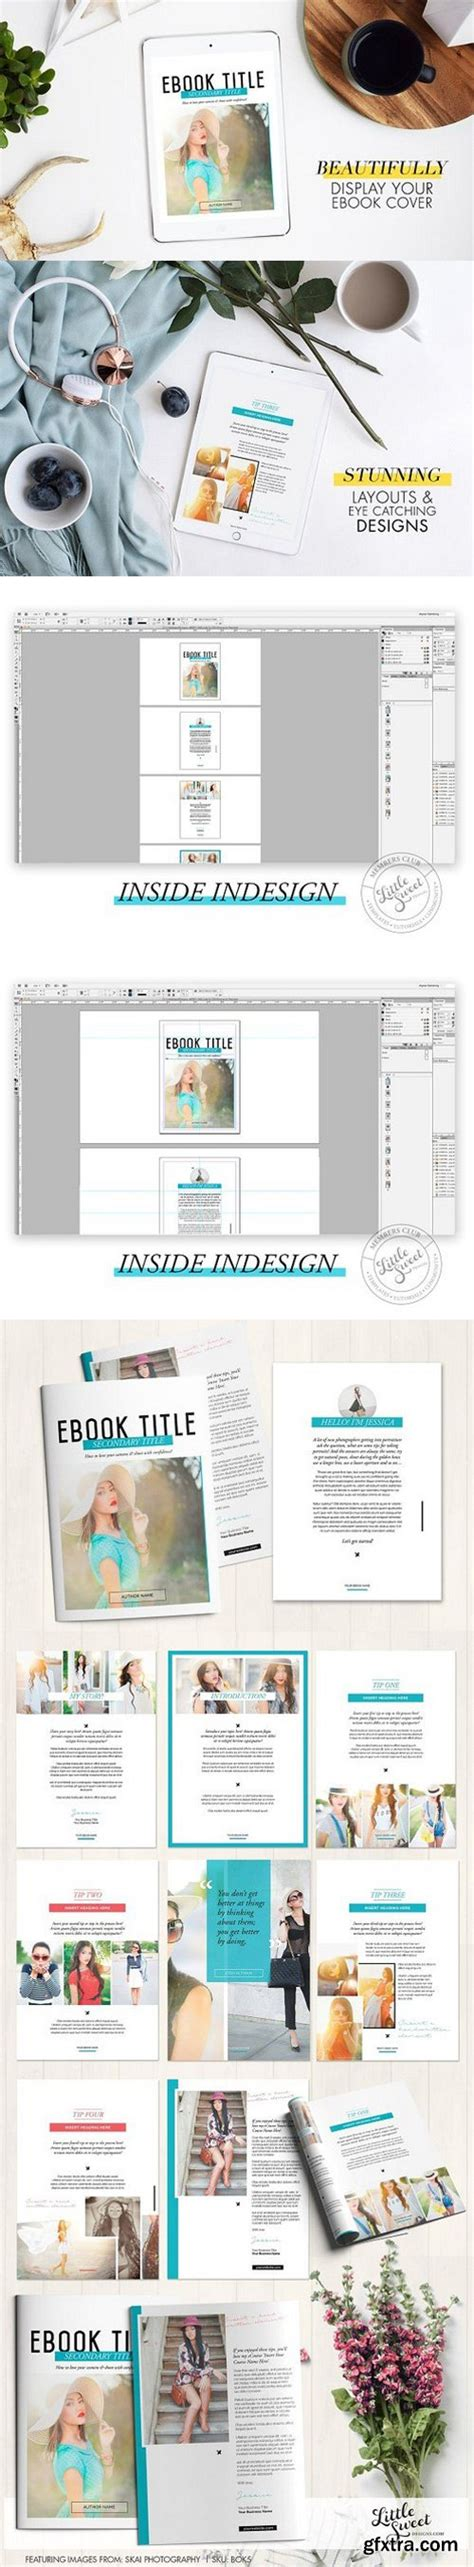 indesign indd magazine template download